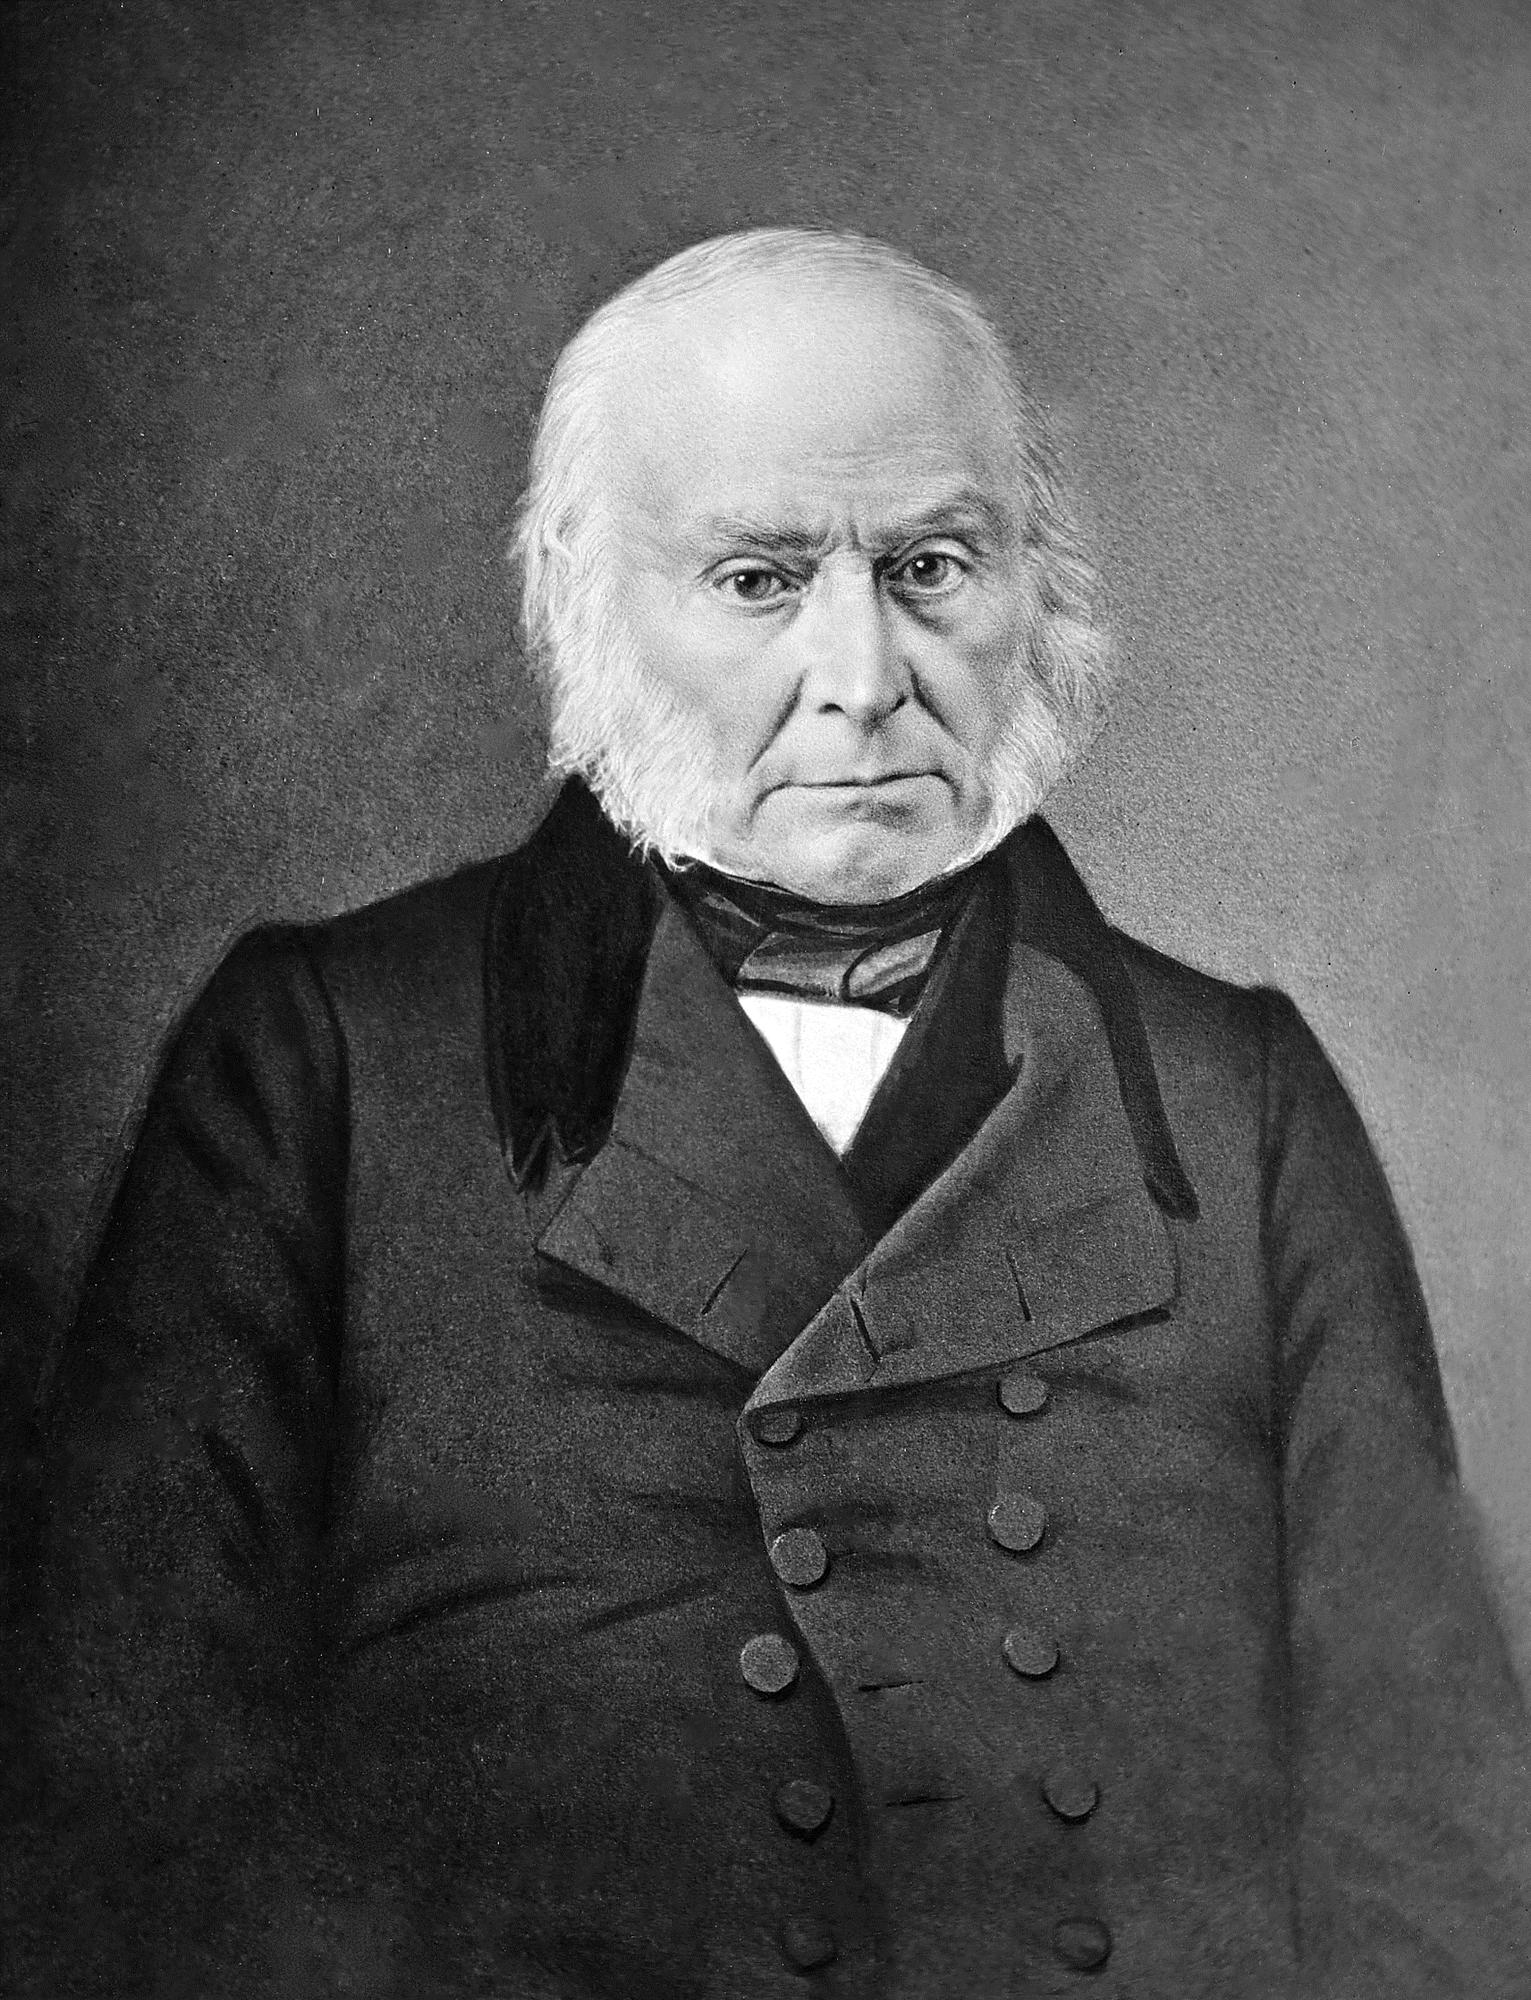 Copy of Portrait Daguerrotype of John Quincy Adams, original ca. 1843-1848